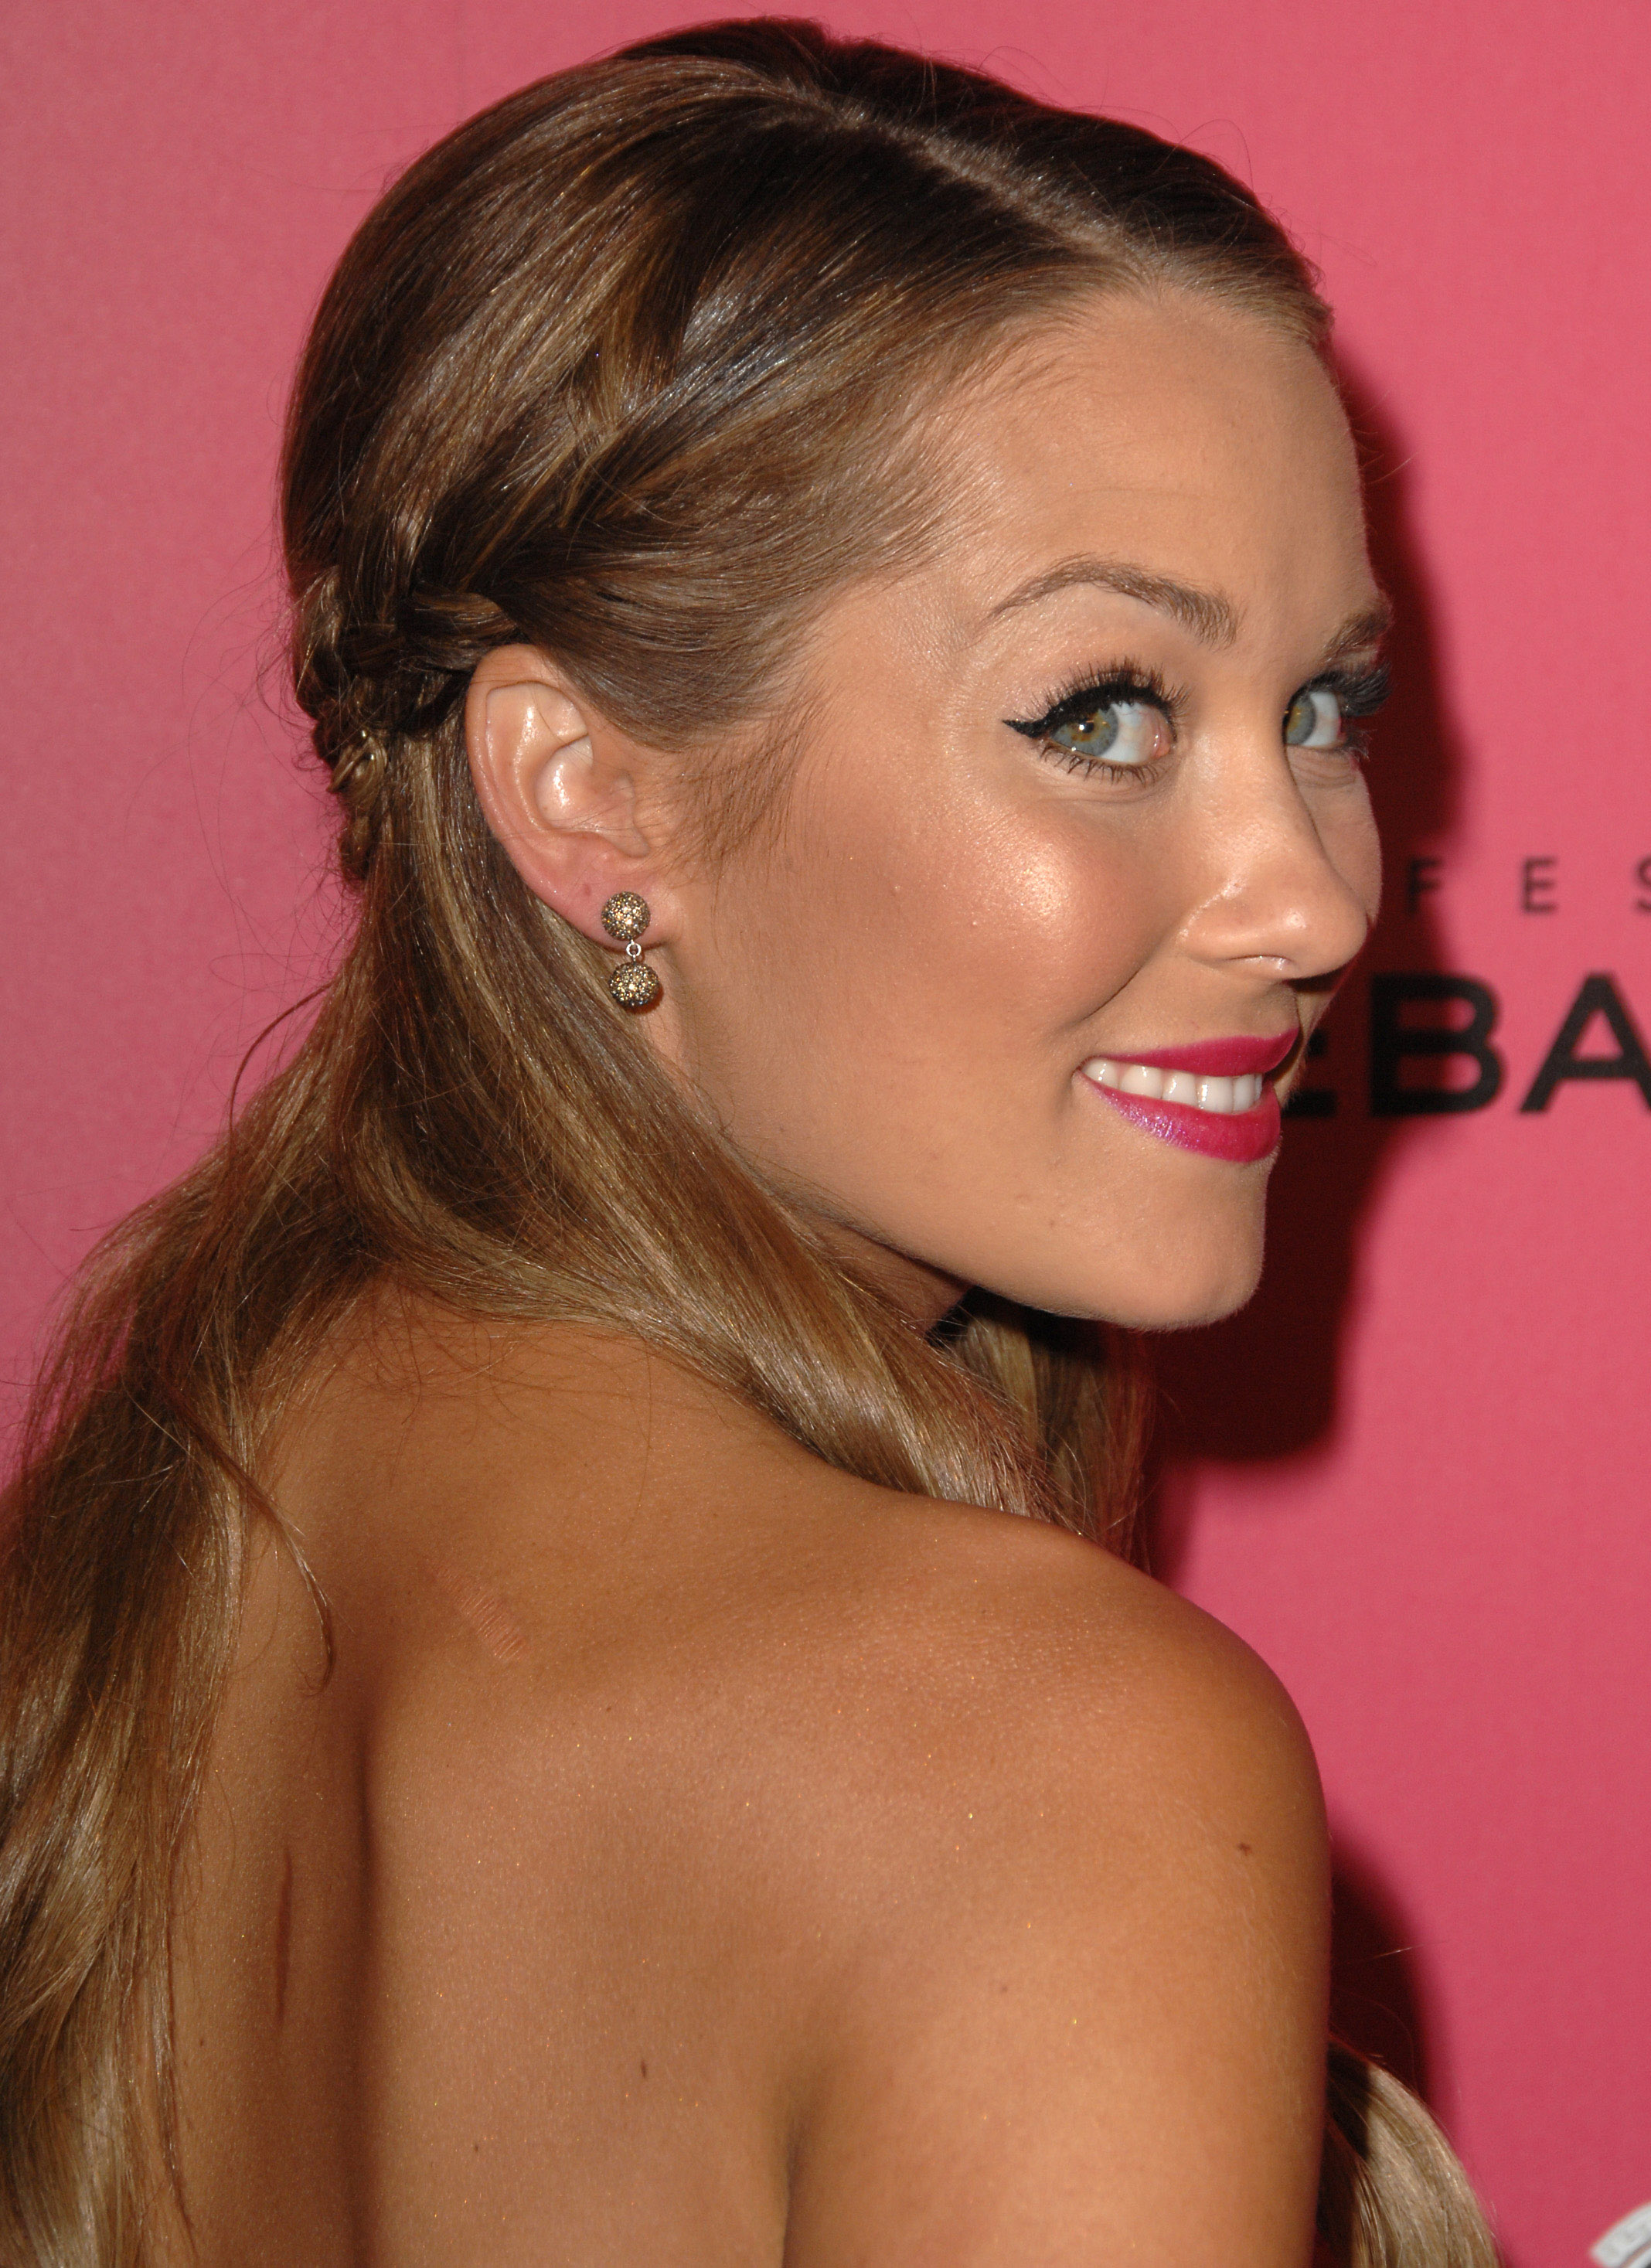 Lauren Conrad arrives at the 6th Annual Hollywood Style Awards at the Armand Hammer Museum on October 11, 2009 in Los Angeles, California.